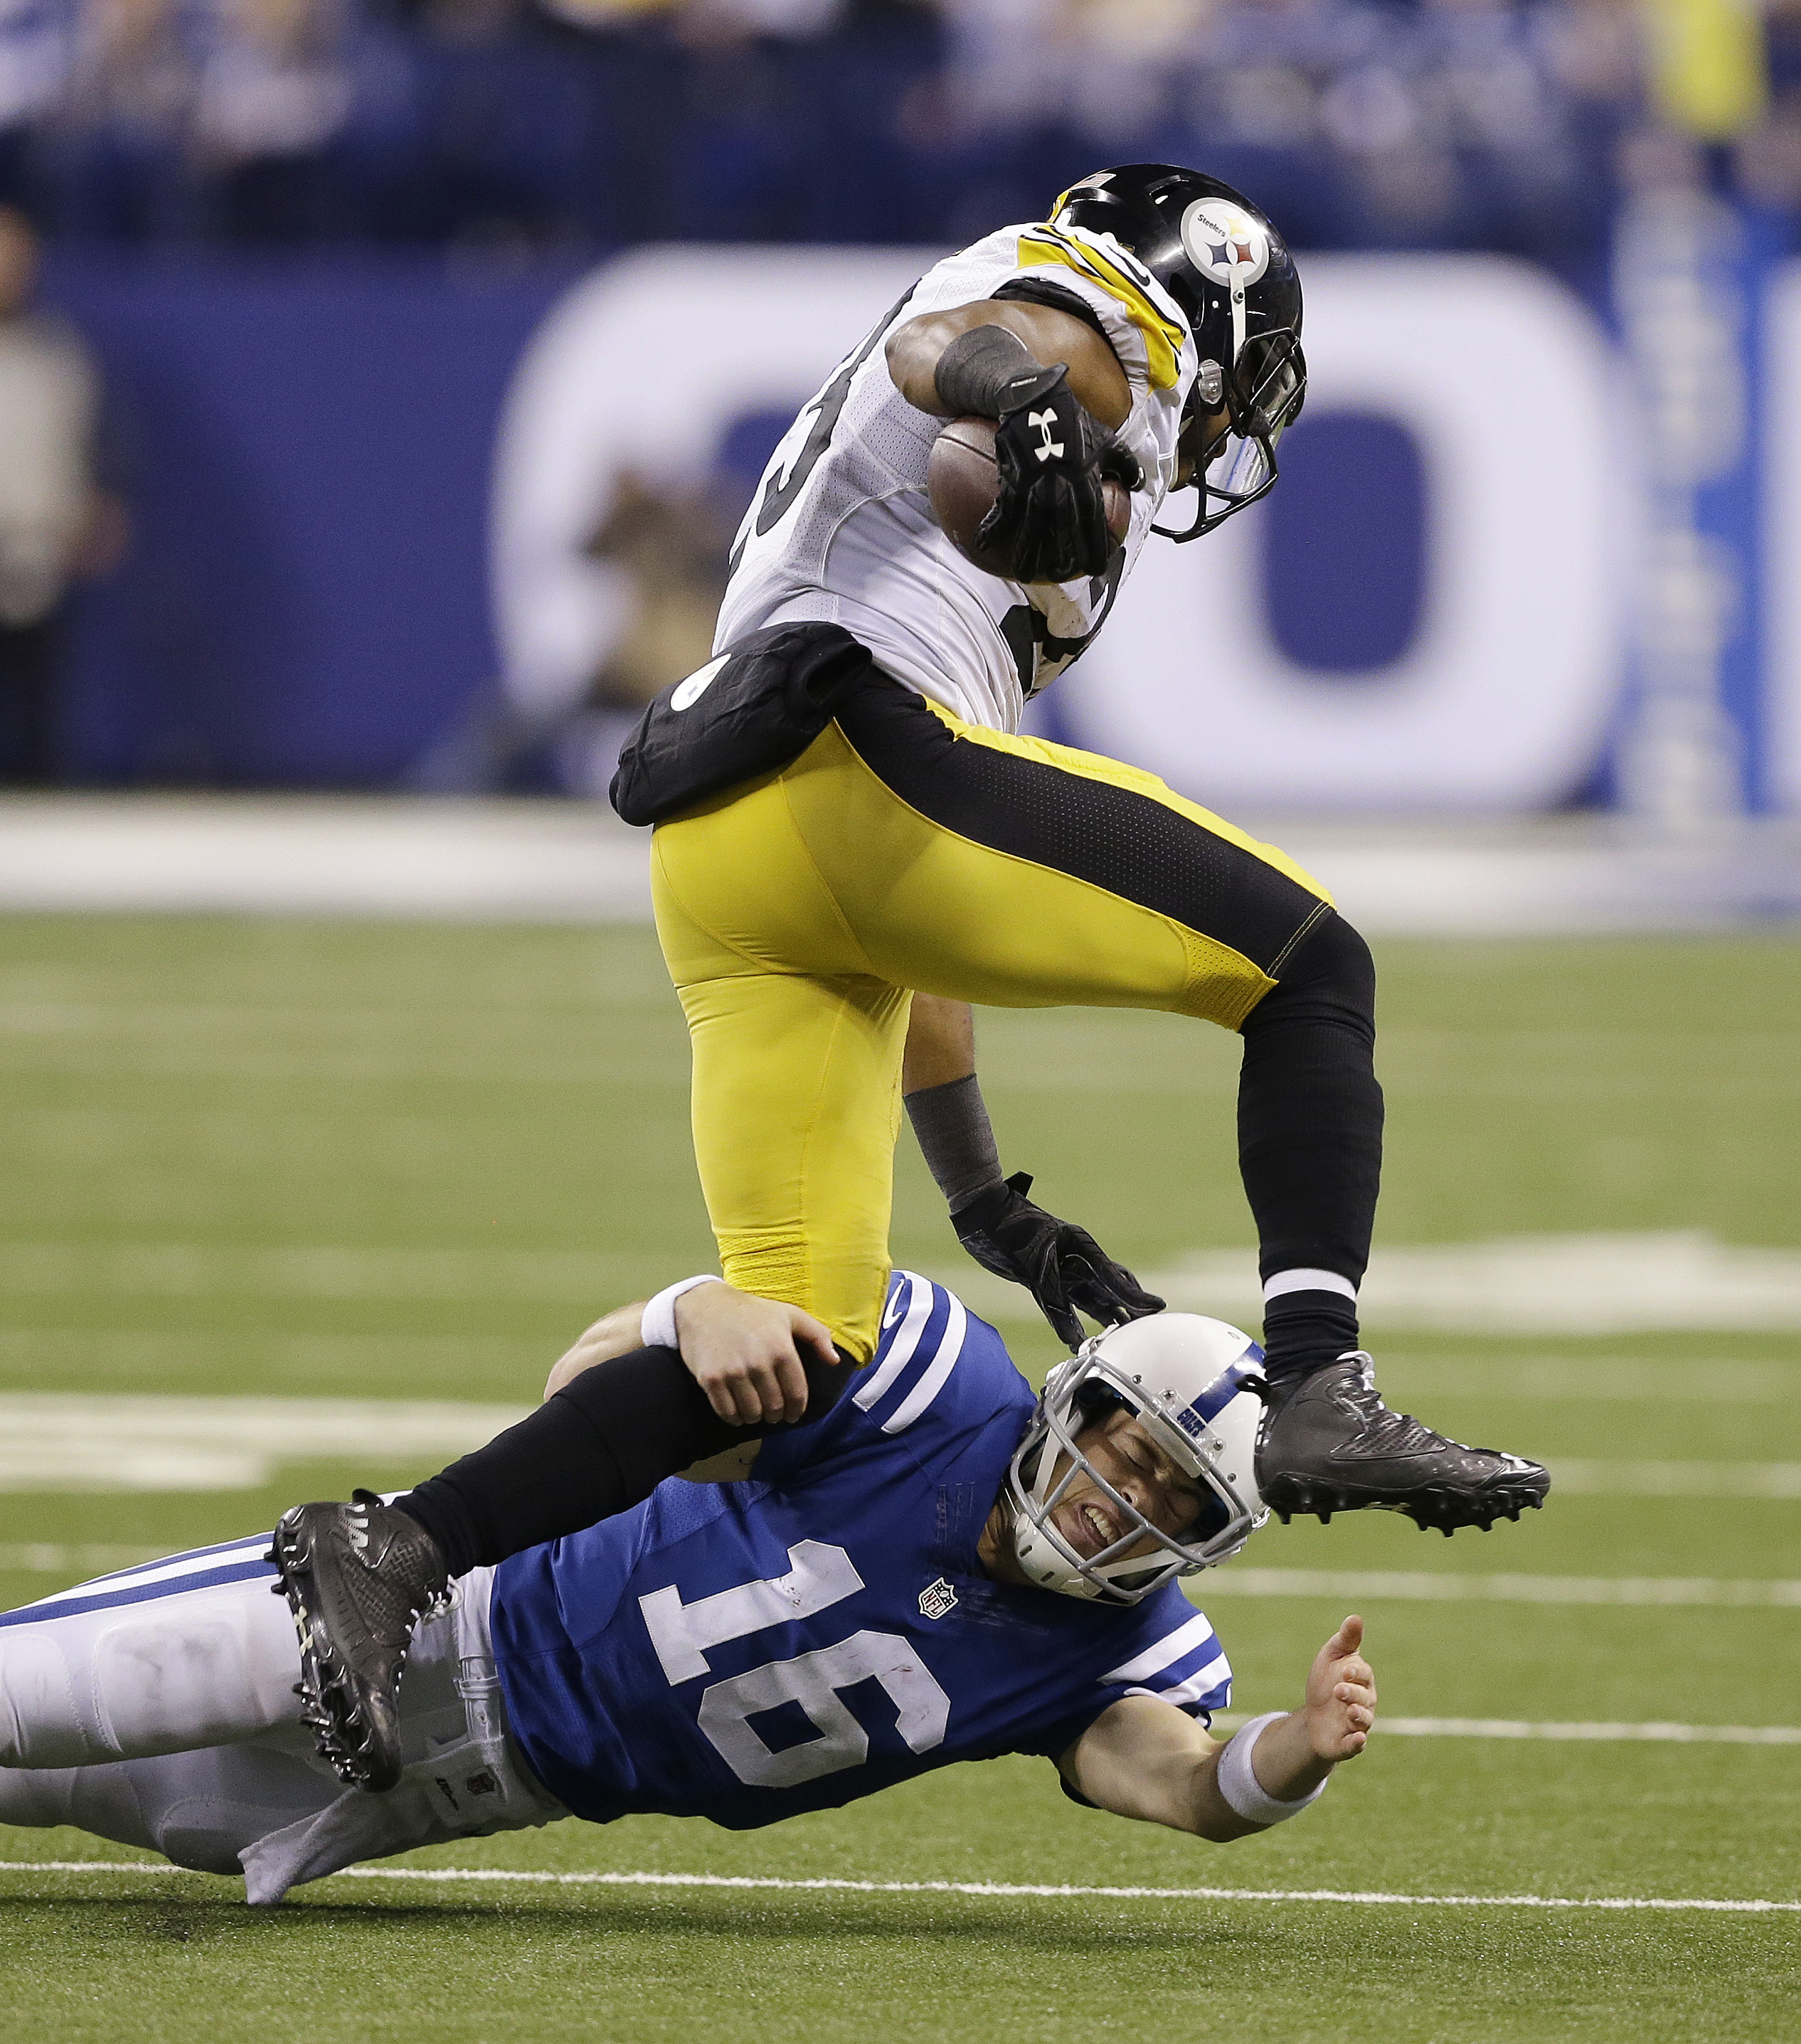 Indianapolis Colts quarterback Scott Tolzien (16) tackles Pittsburgh Steelers' Mike Mitchell (23) after Mitchell made an interception during the second half of an NFL football game Thursday, Nov. 24, 2016, in Indianapolis. (AP Photo/Michael Conroy)